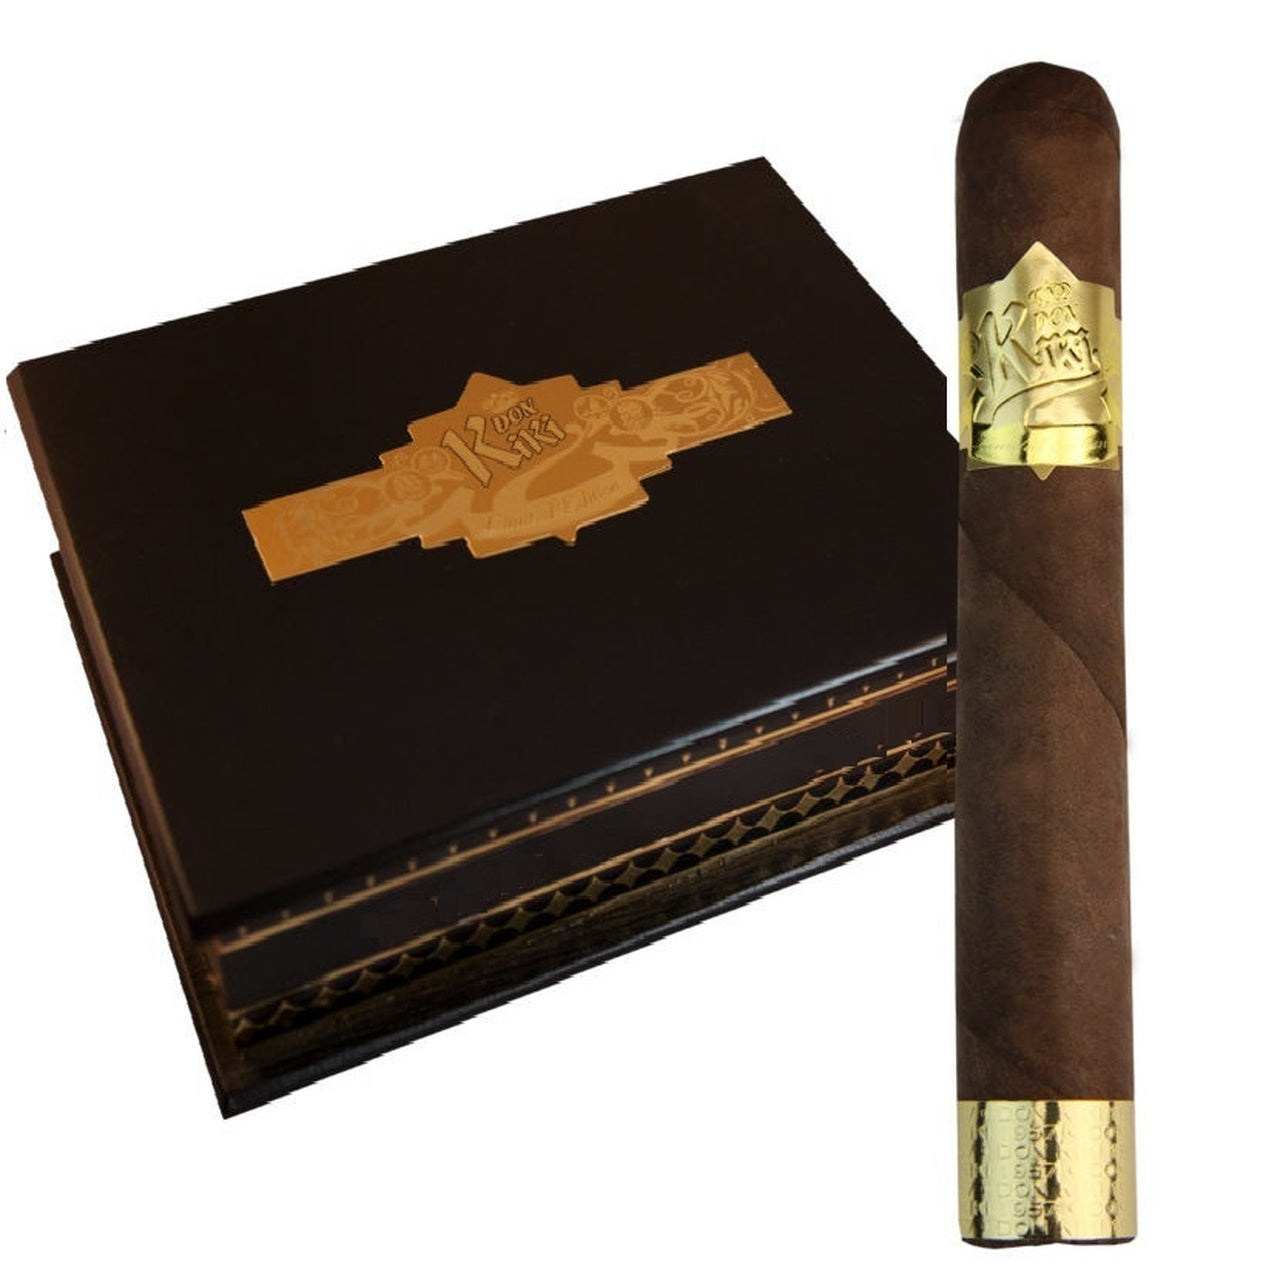 DON KIKI GOLD LABEL (El Gordo, Robusto and Toro Cigars) - Cigar boulevard